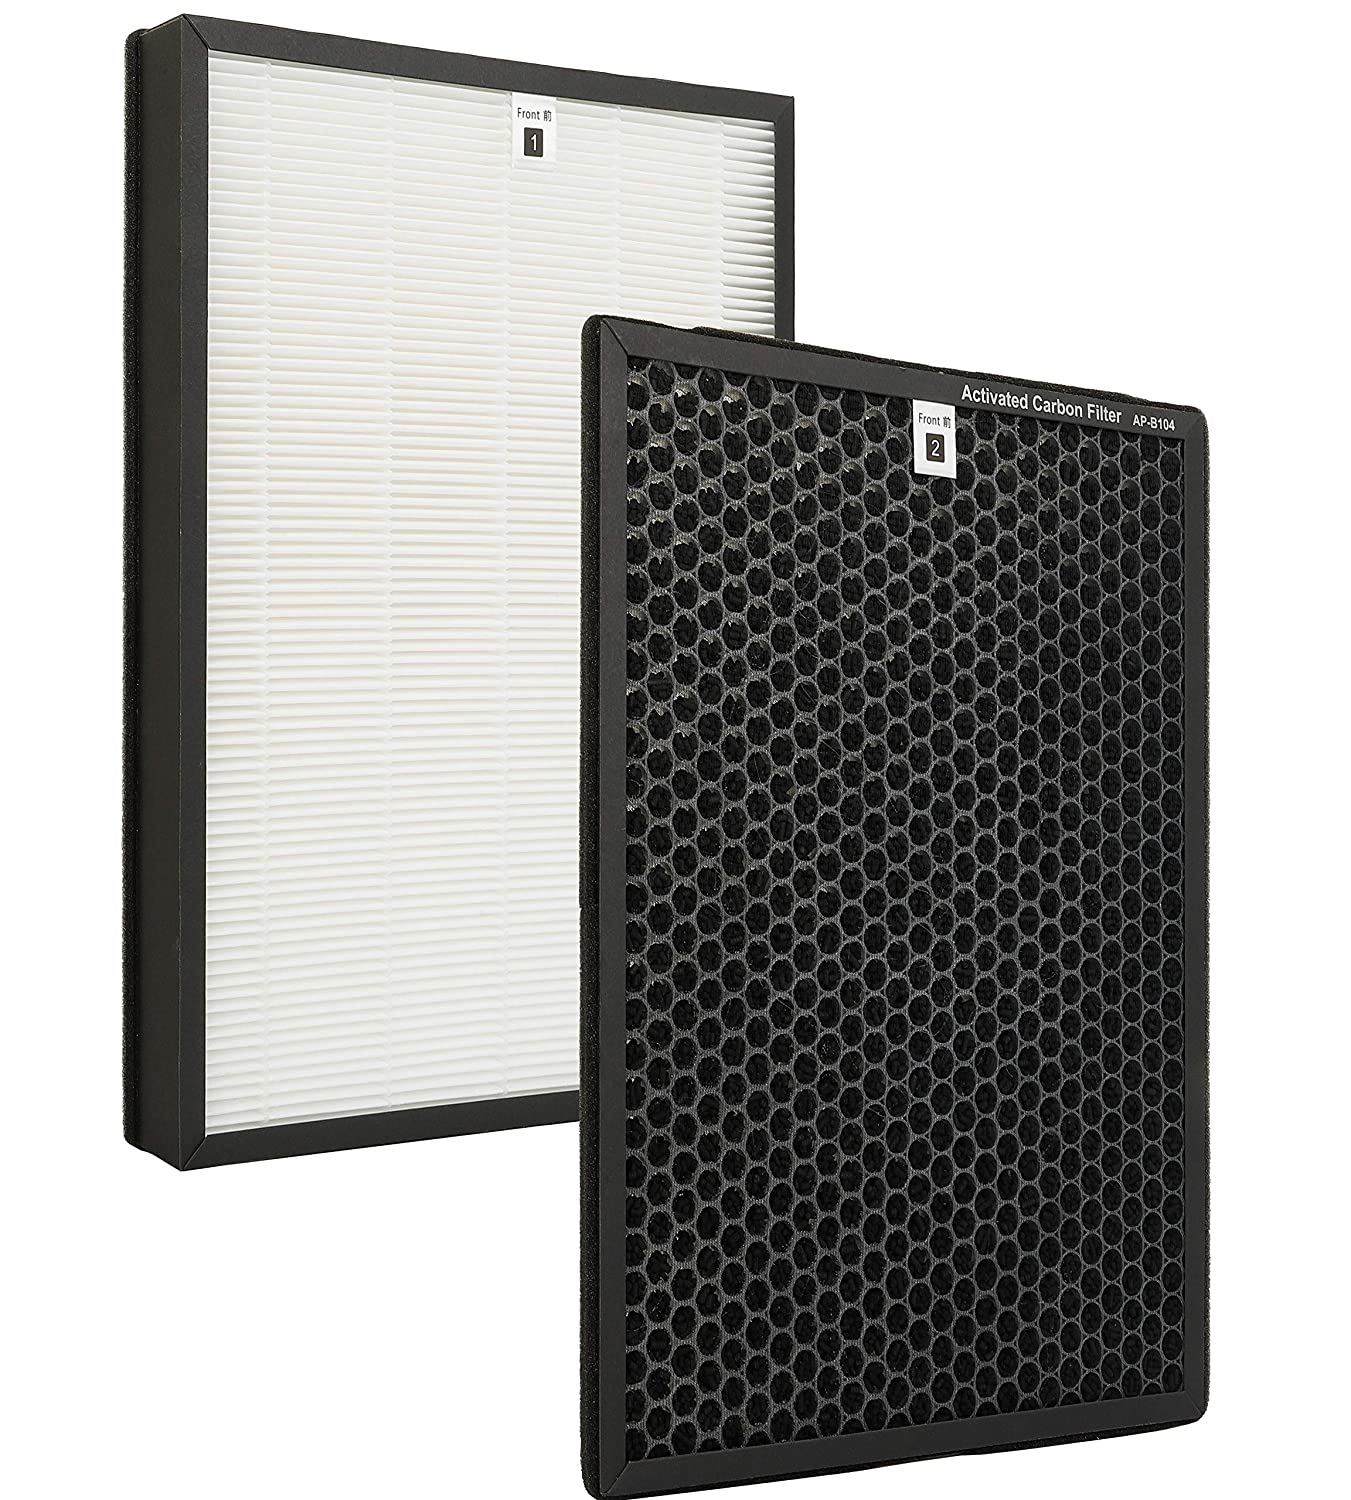 Flintar Premium True HEPA Replacement Filter Compatible with Alexapure Breeze Air Purifier 3049 Filter Combo – 1 True HEPA Filter and 1 Activated Carbon Filter, Captures 99.97% of allergens, 1 - Set